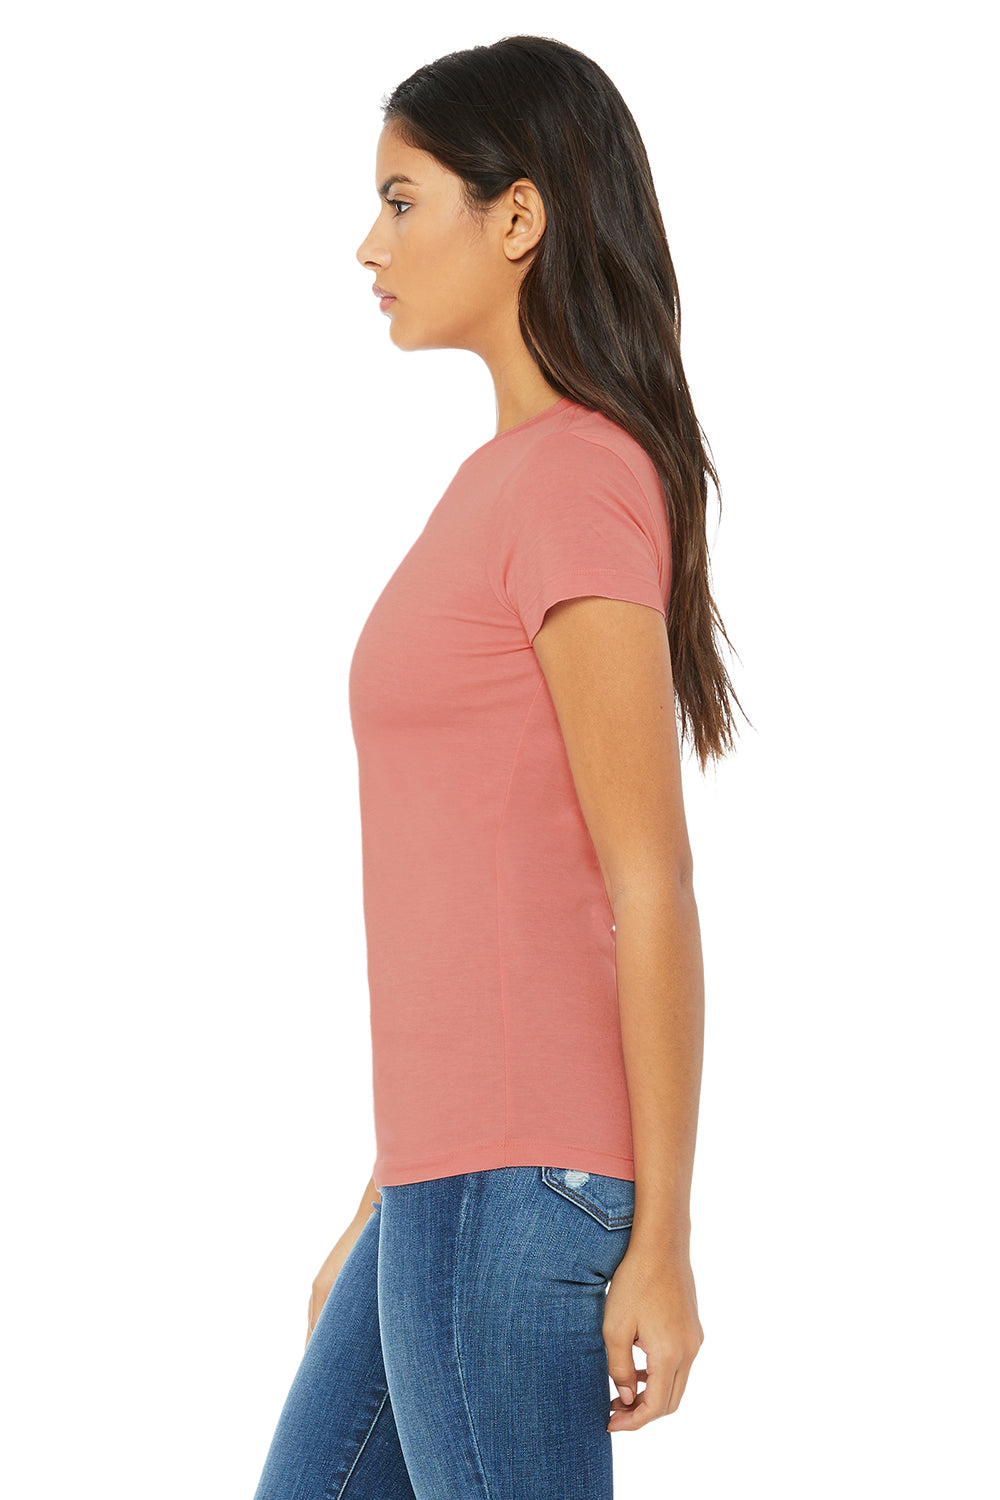 Bella + Canvas 6004 Womens The Favorite Short Sleeve Crewneck T-Shirt Heather Pink Side